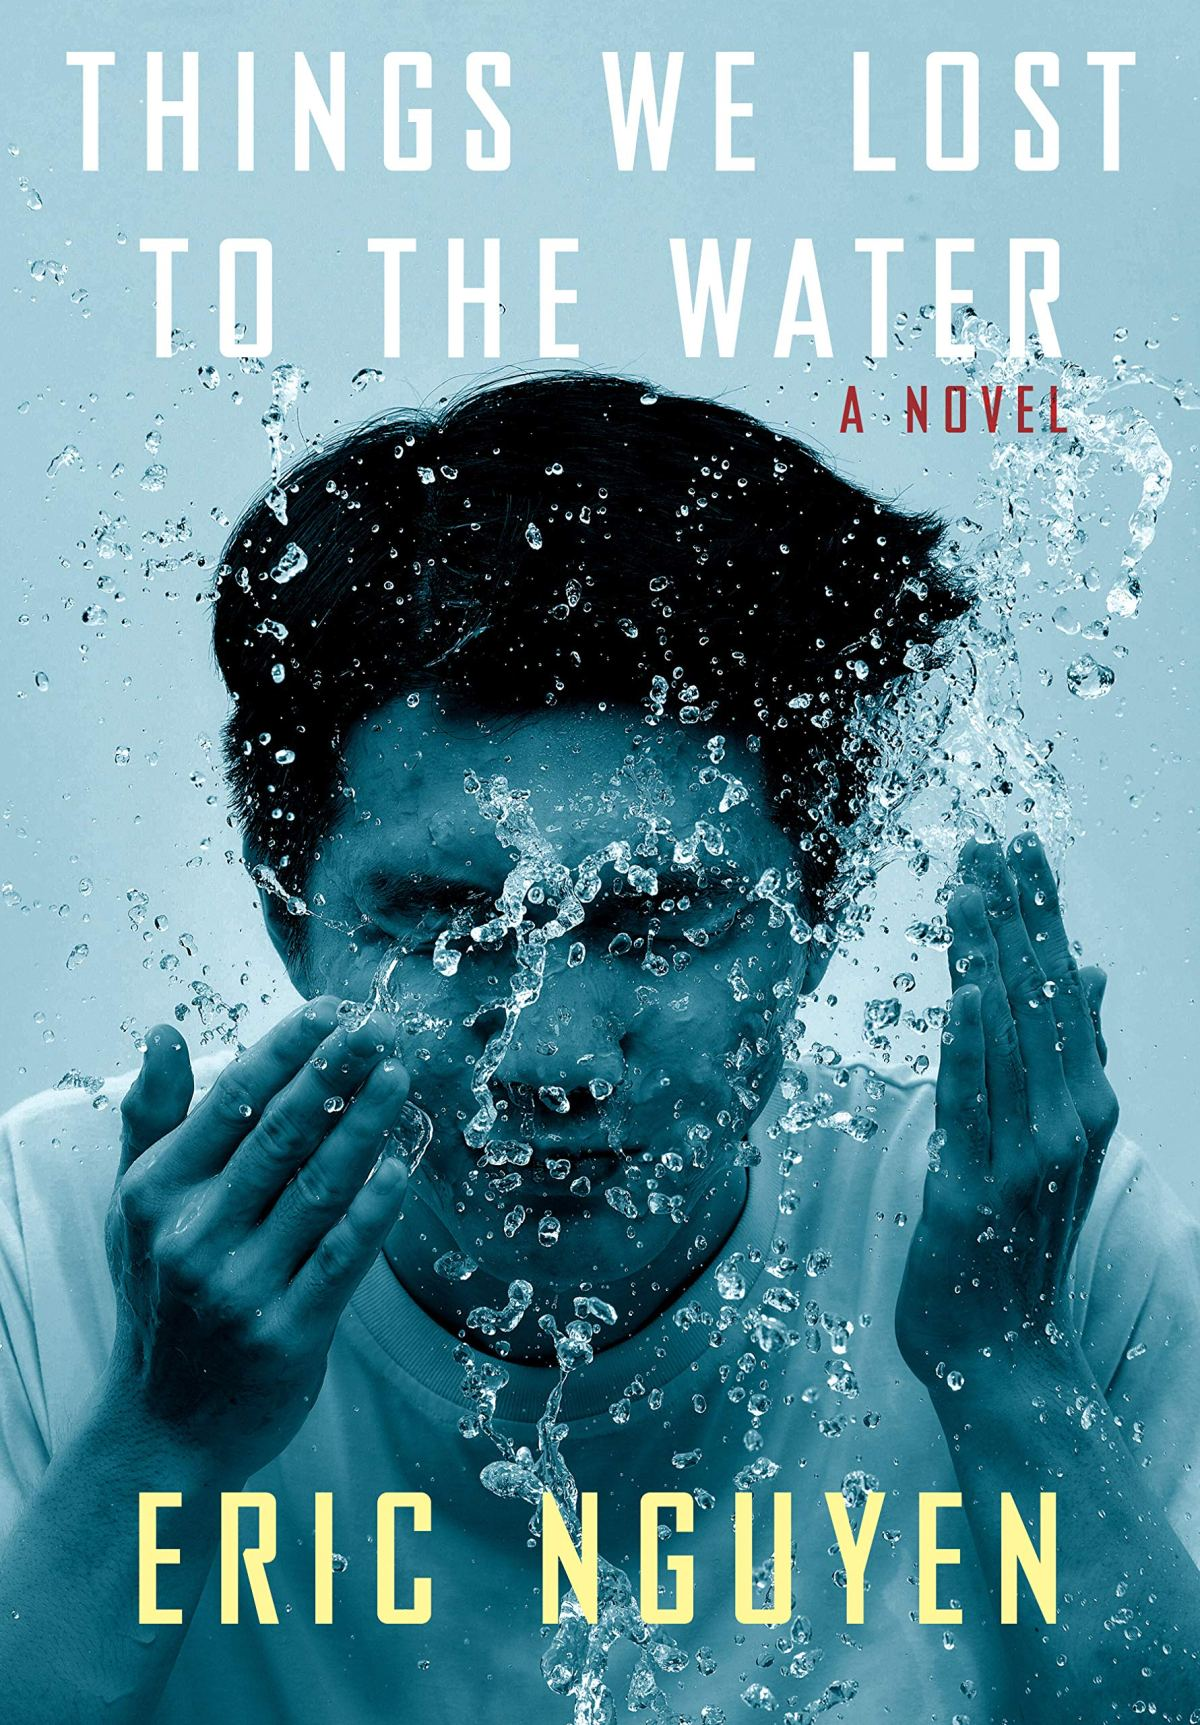 The cover of Things We Lost to the Water.